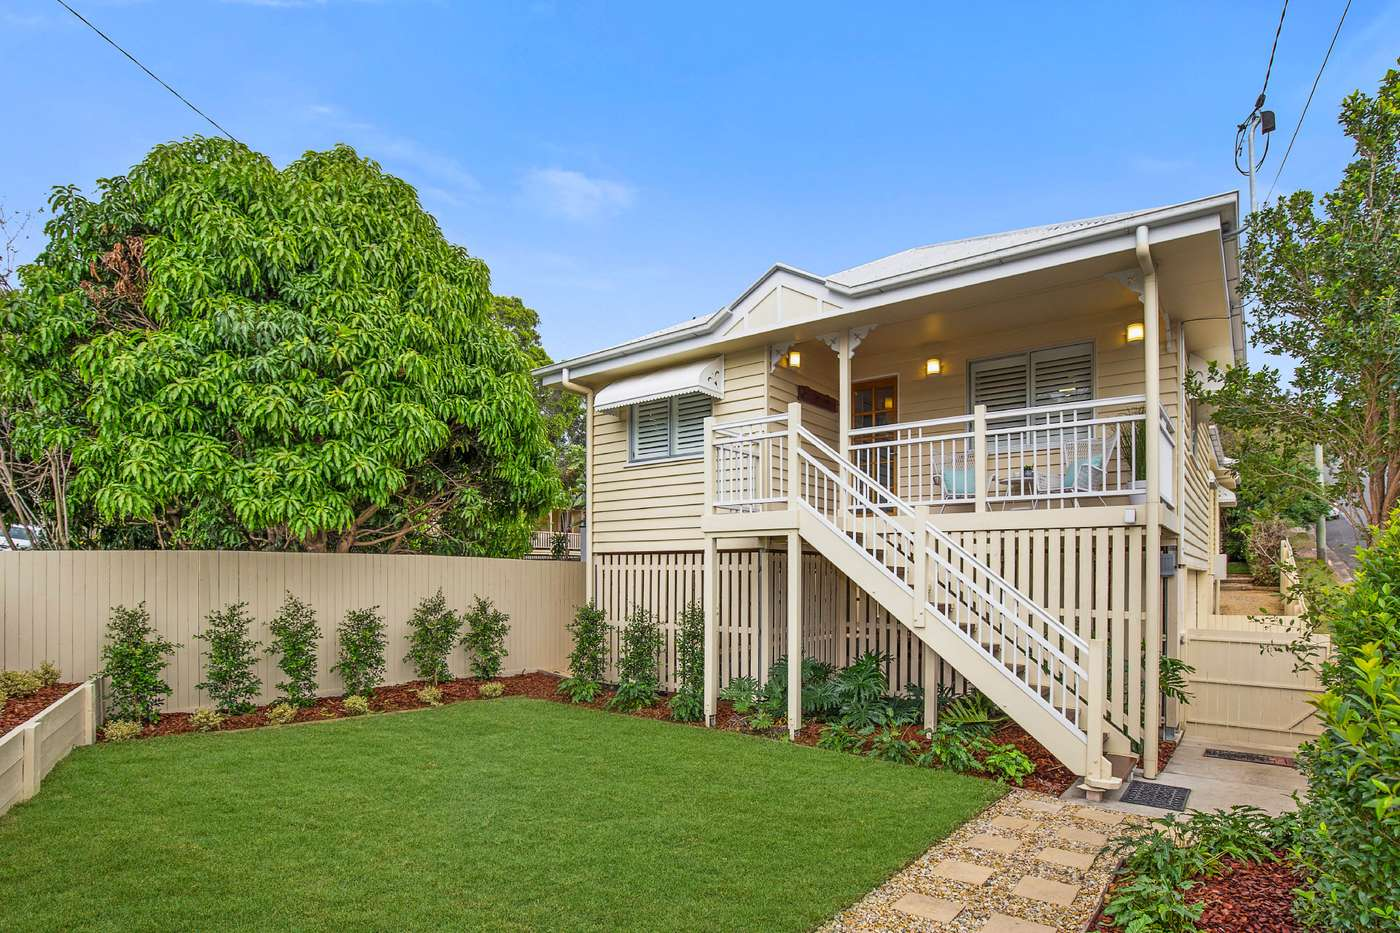 Main view of Homely house listing, 27 Morley Street, Toowong, QLD 4066